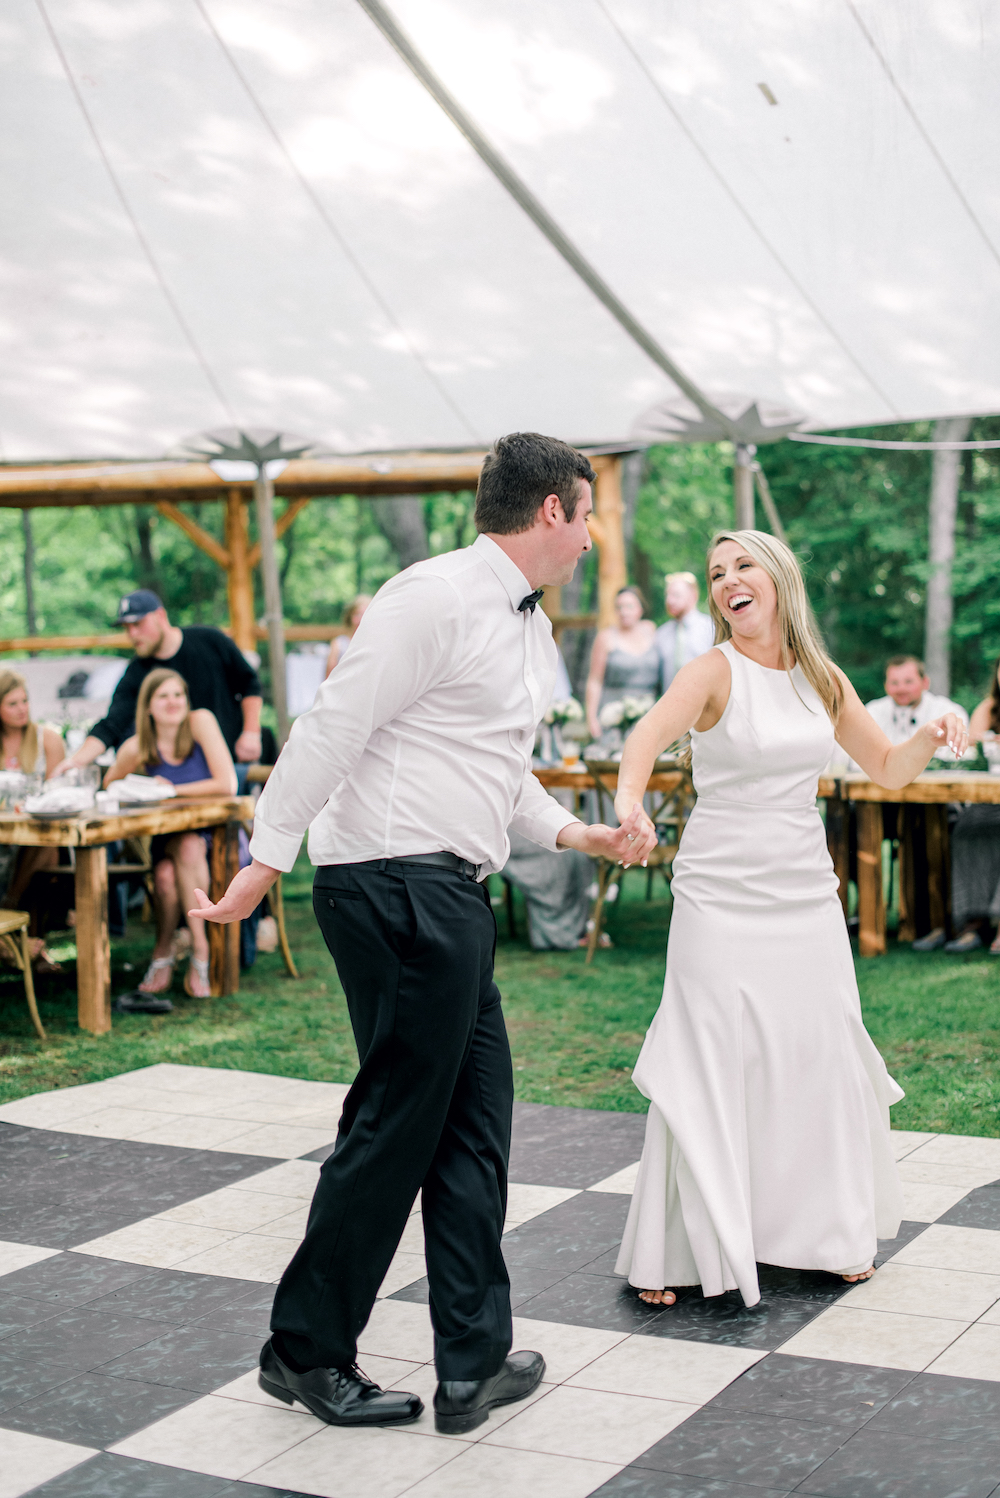 A couple sharing their first dance